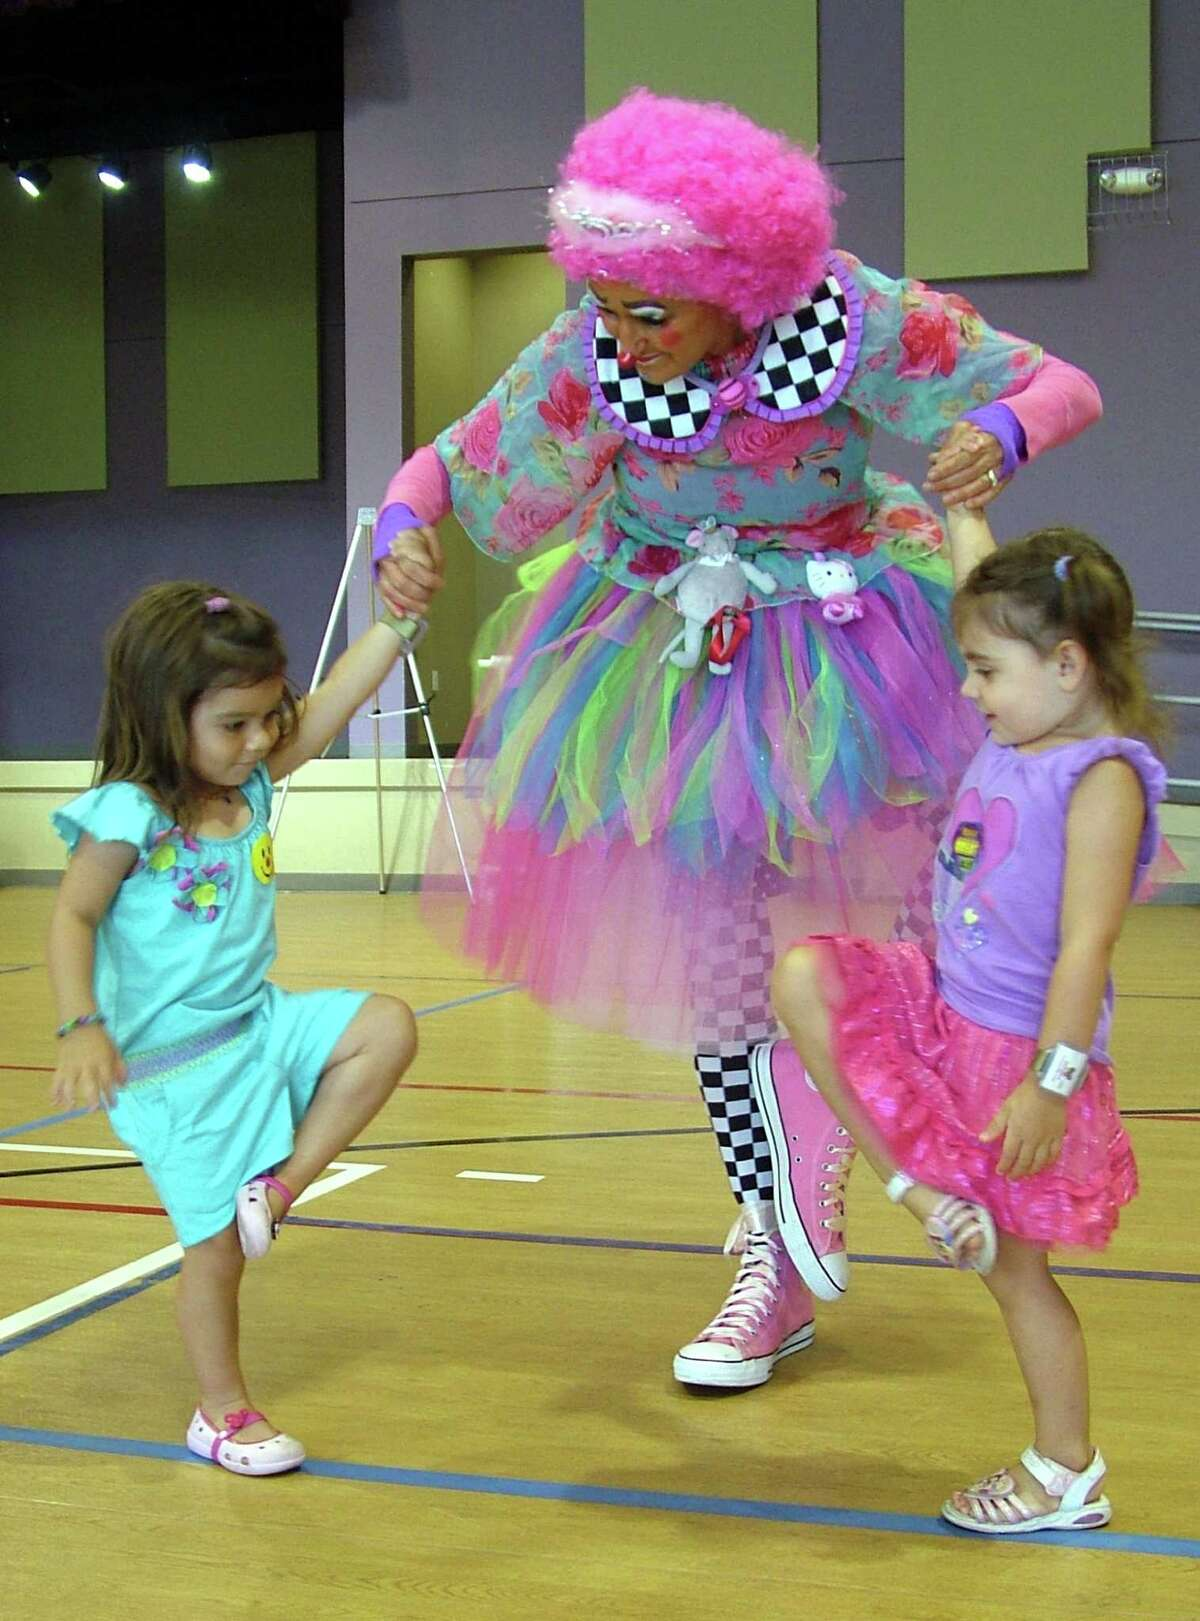 Two-year-old Noa Forrest of Windermere, Fla., (left) and Hadley Lamar of Live Oak enjoy a dance Saturday with Tutu the clown of the Jolly Joeys Clown Alley organization at Morgan's Wonderland.